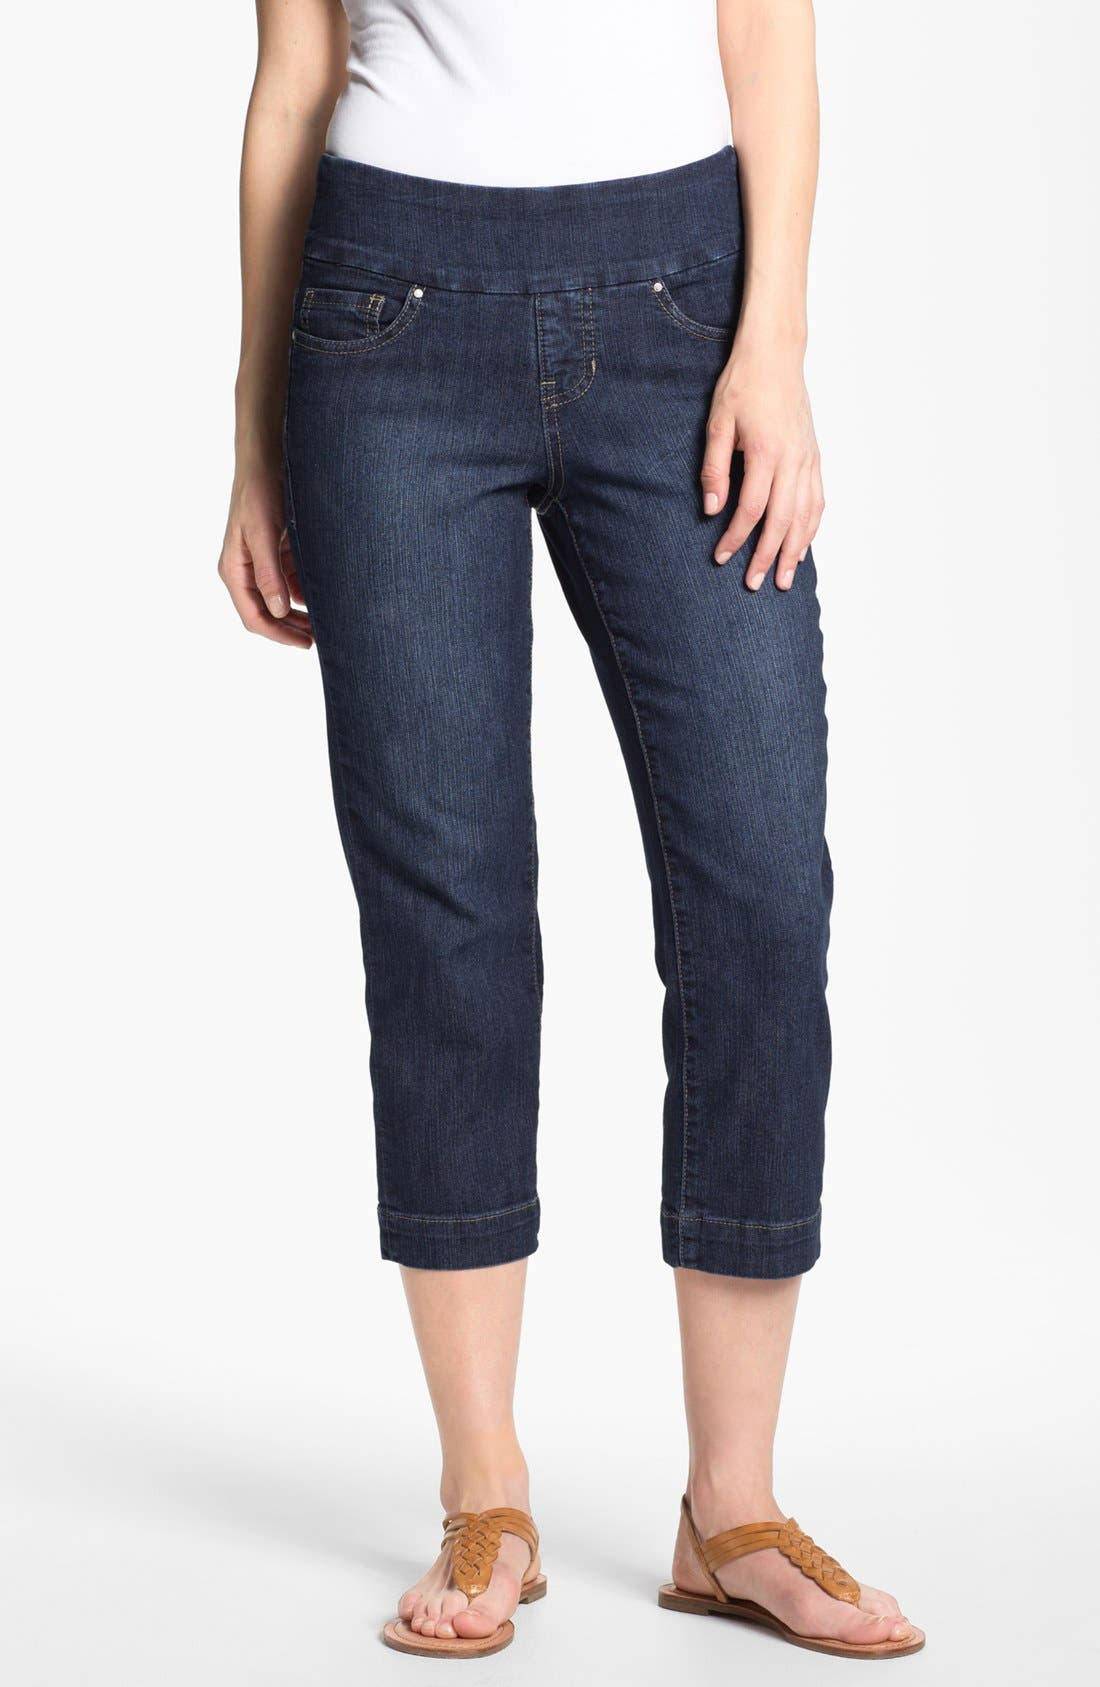 Alternate Image 1 Selected - Jag Jeans 'Fenmore' Crop Stretch Jeans